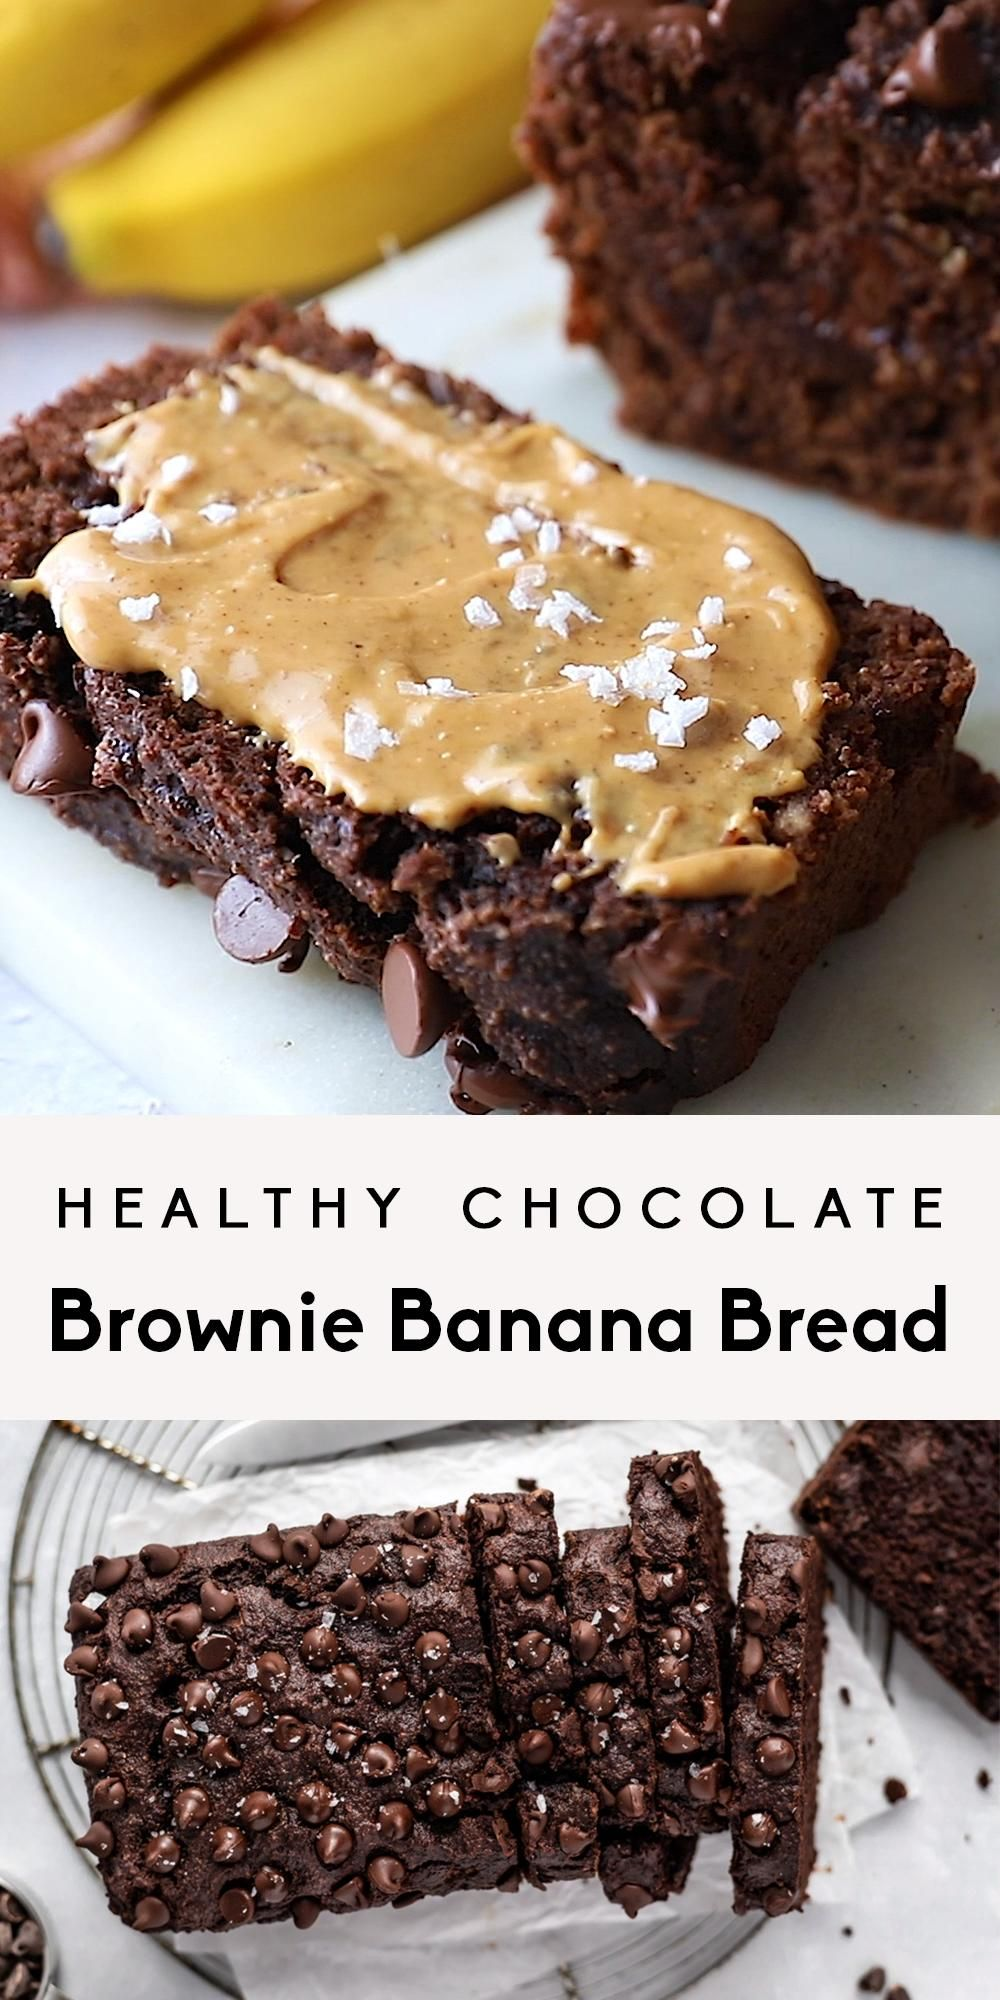 Healthy Chocolate Brownie Banana Bread